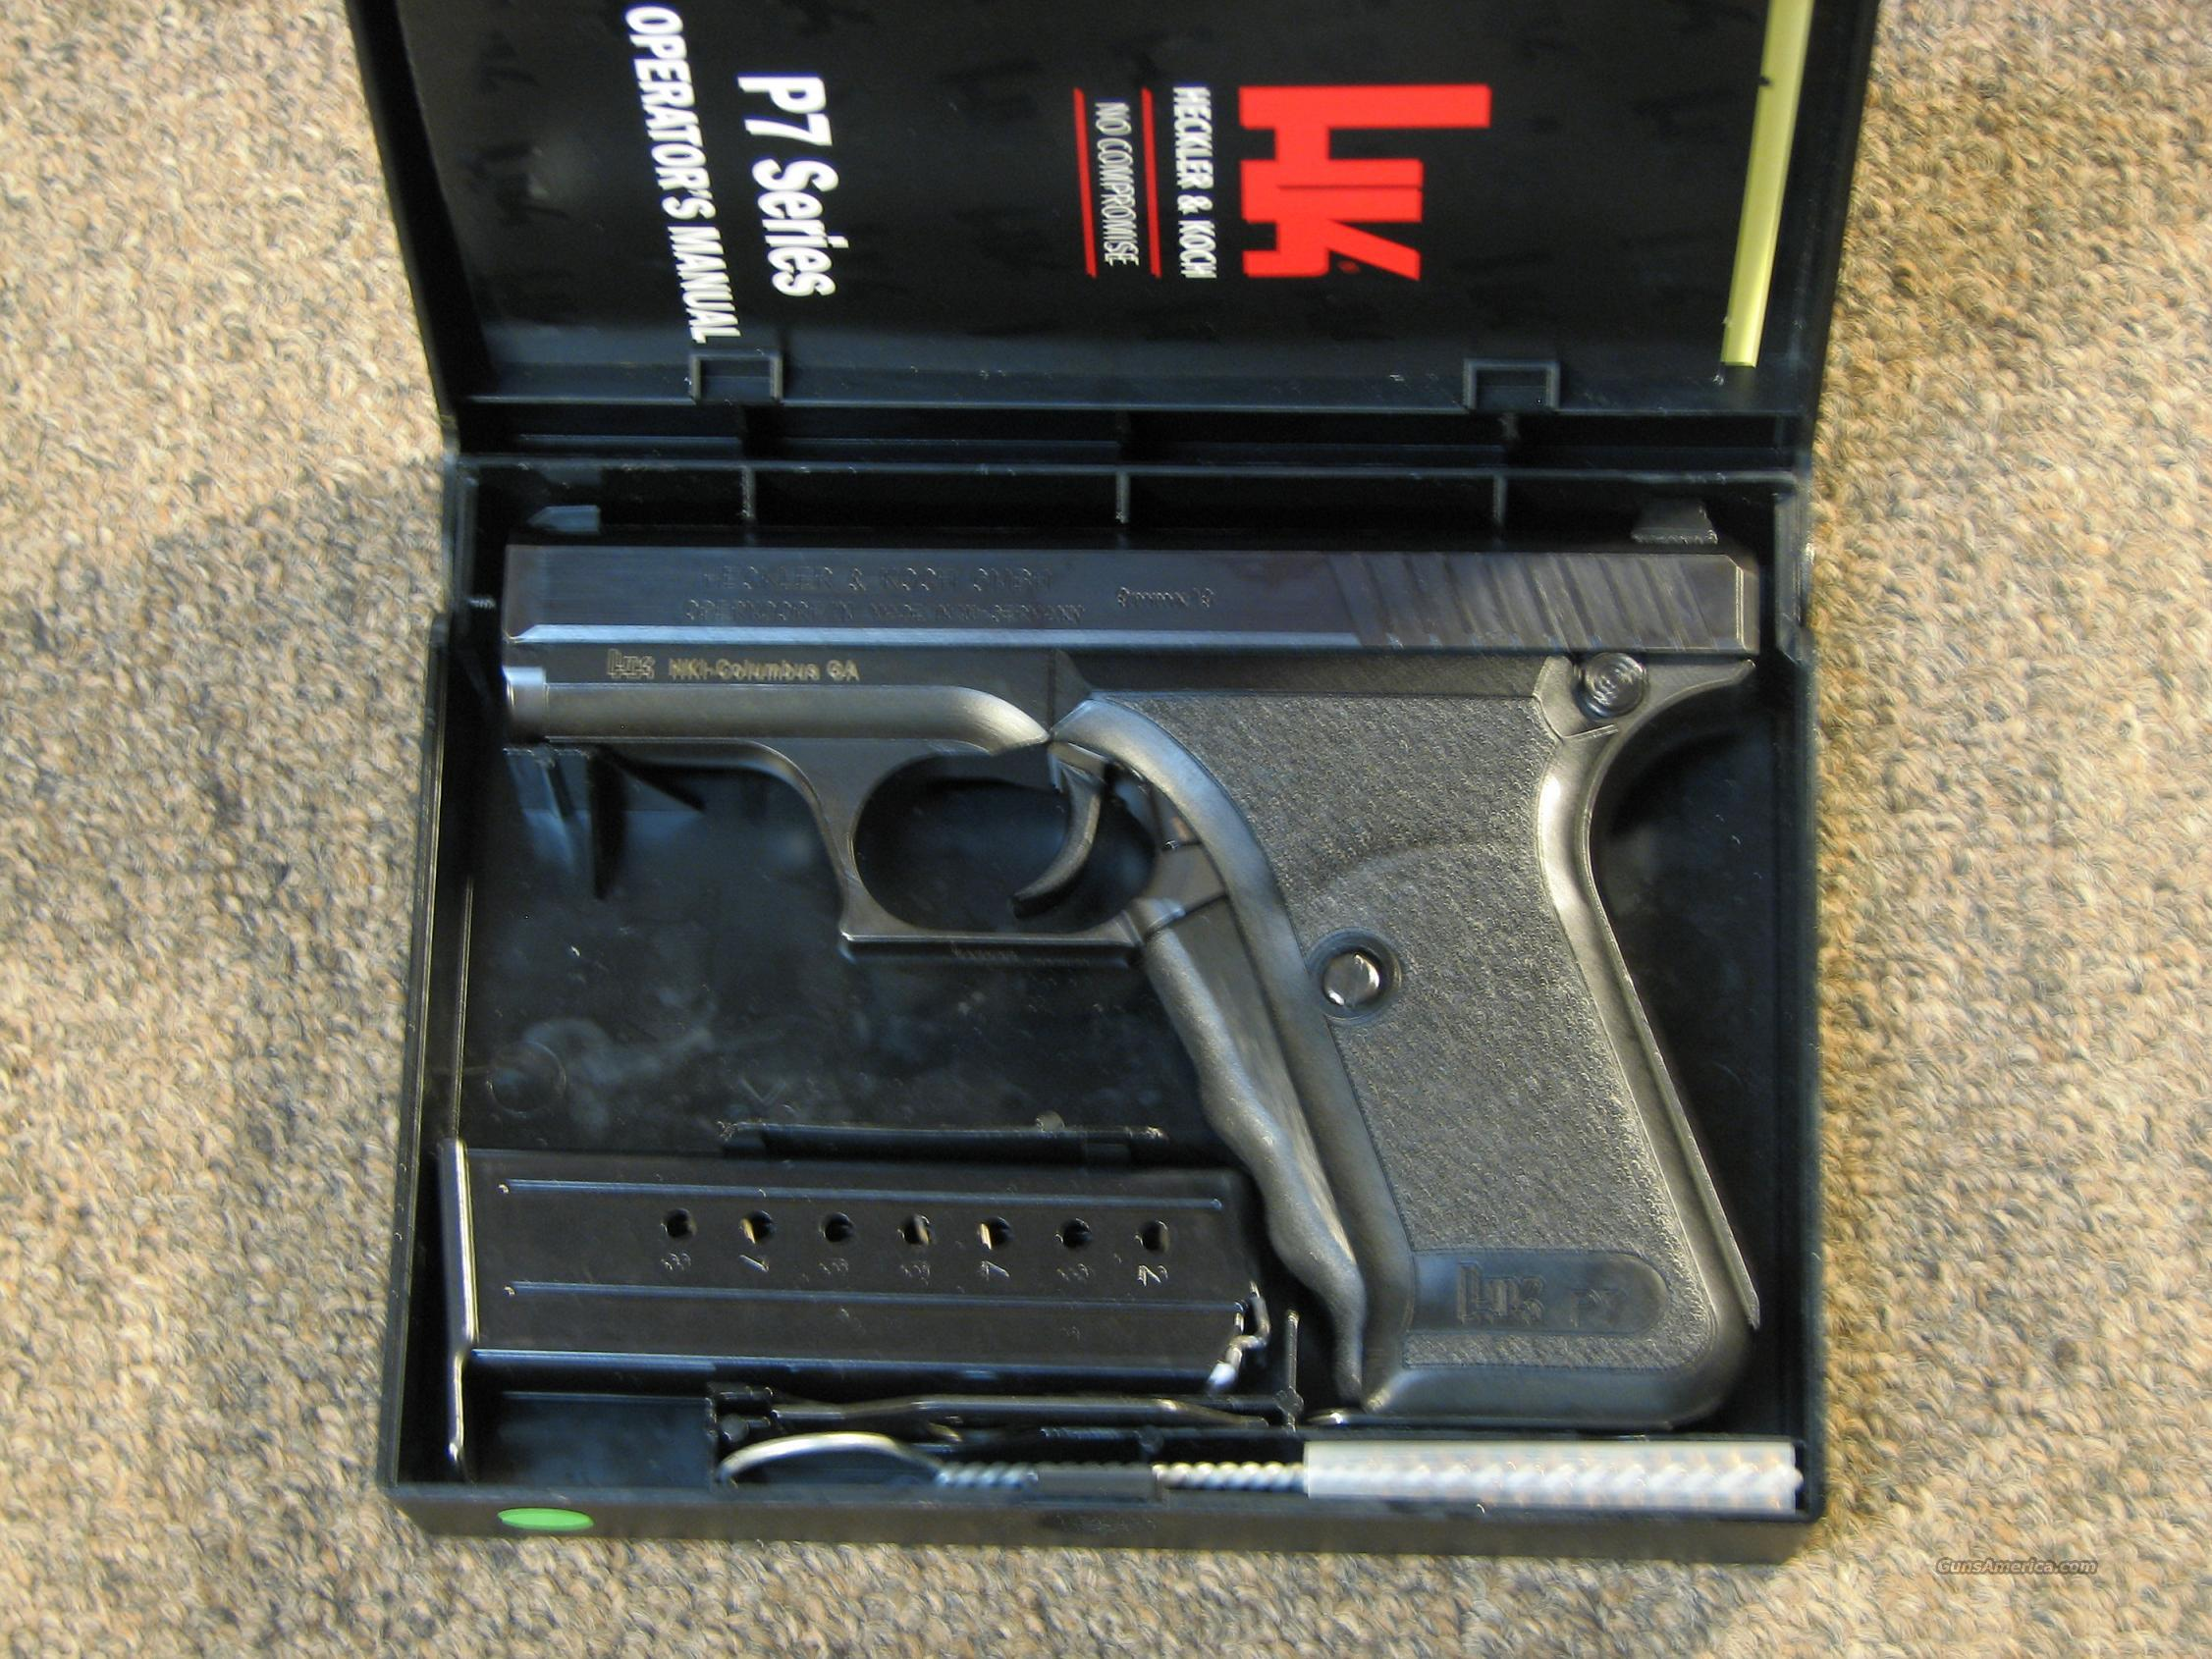 HECKLER & KOCH P7 WEST GERMAN POLICE 'A' GRADE 9mm - LIKE NEW  Guns > Pistols > Heckler & Koch Pistols > SteelFrame